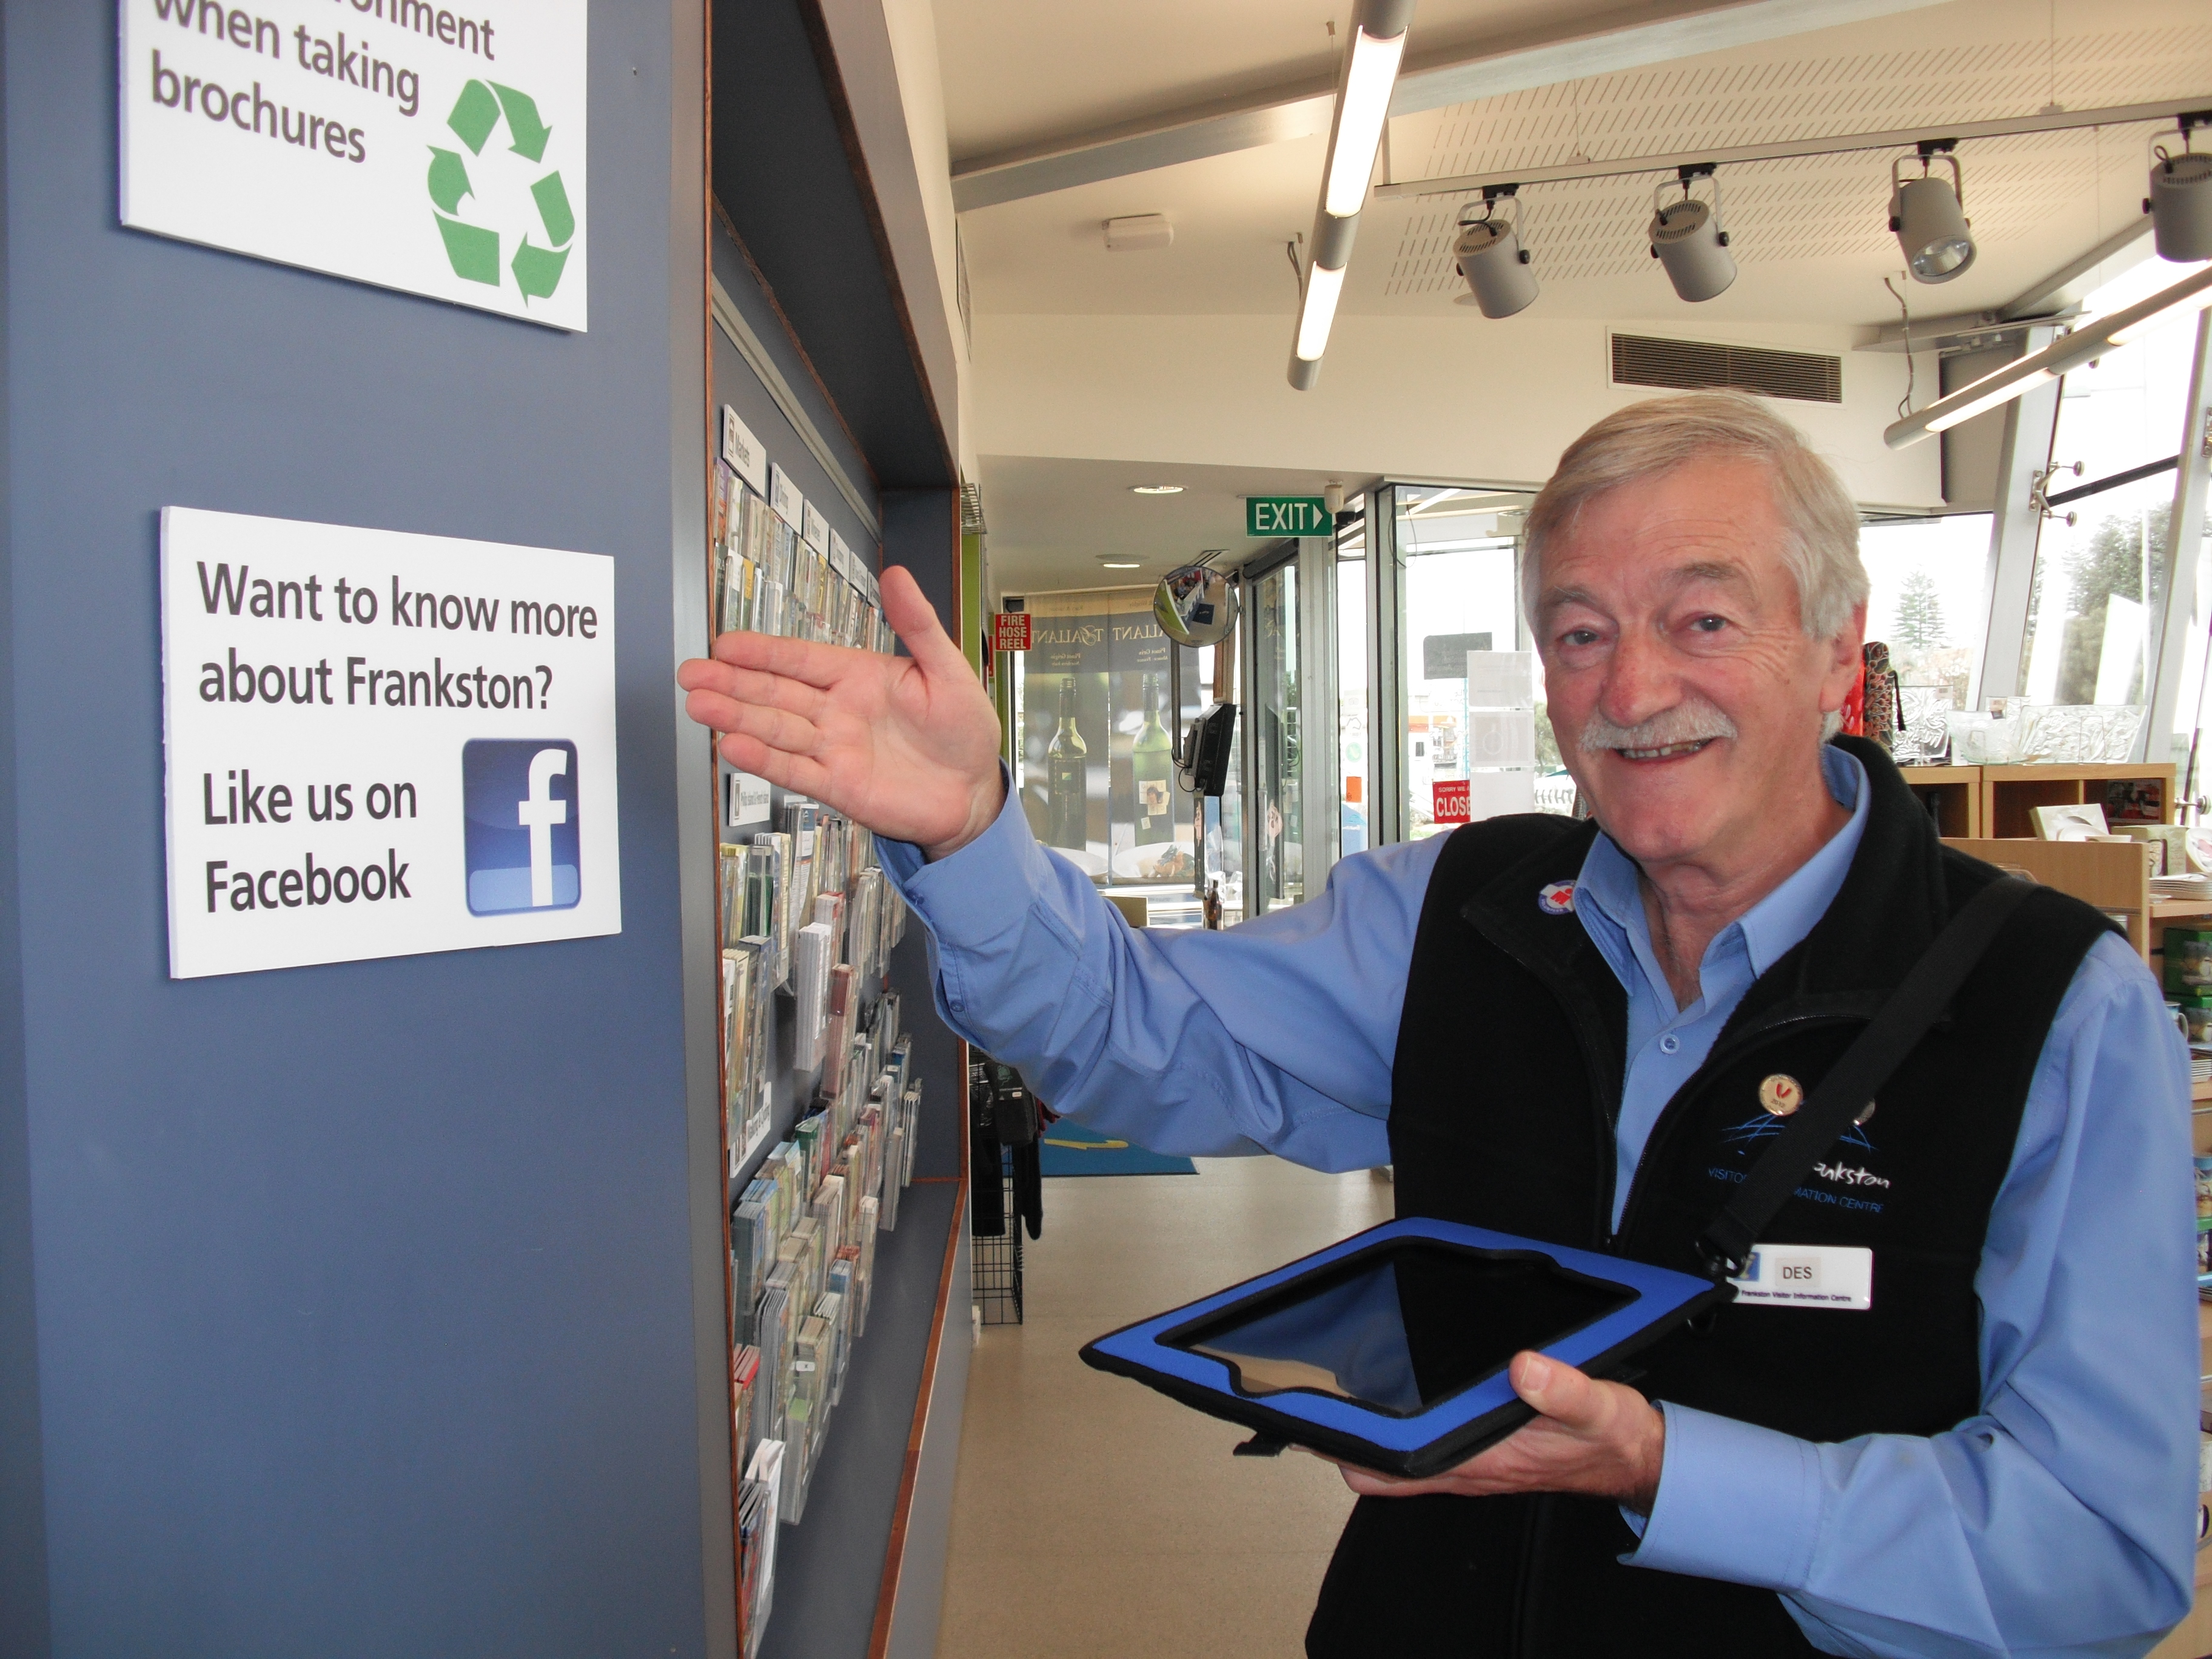 Frankston Visitor Information Centre Volunteer Like us on Facebook